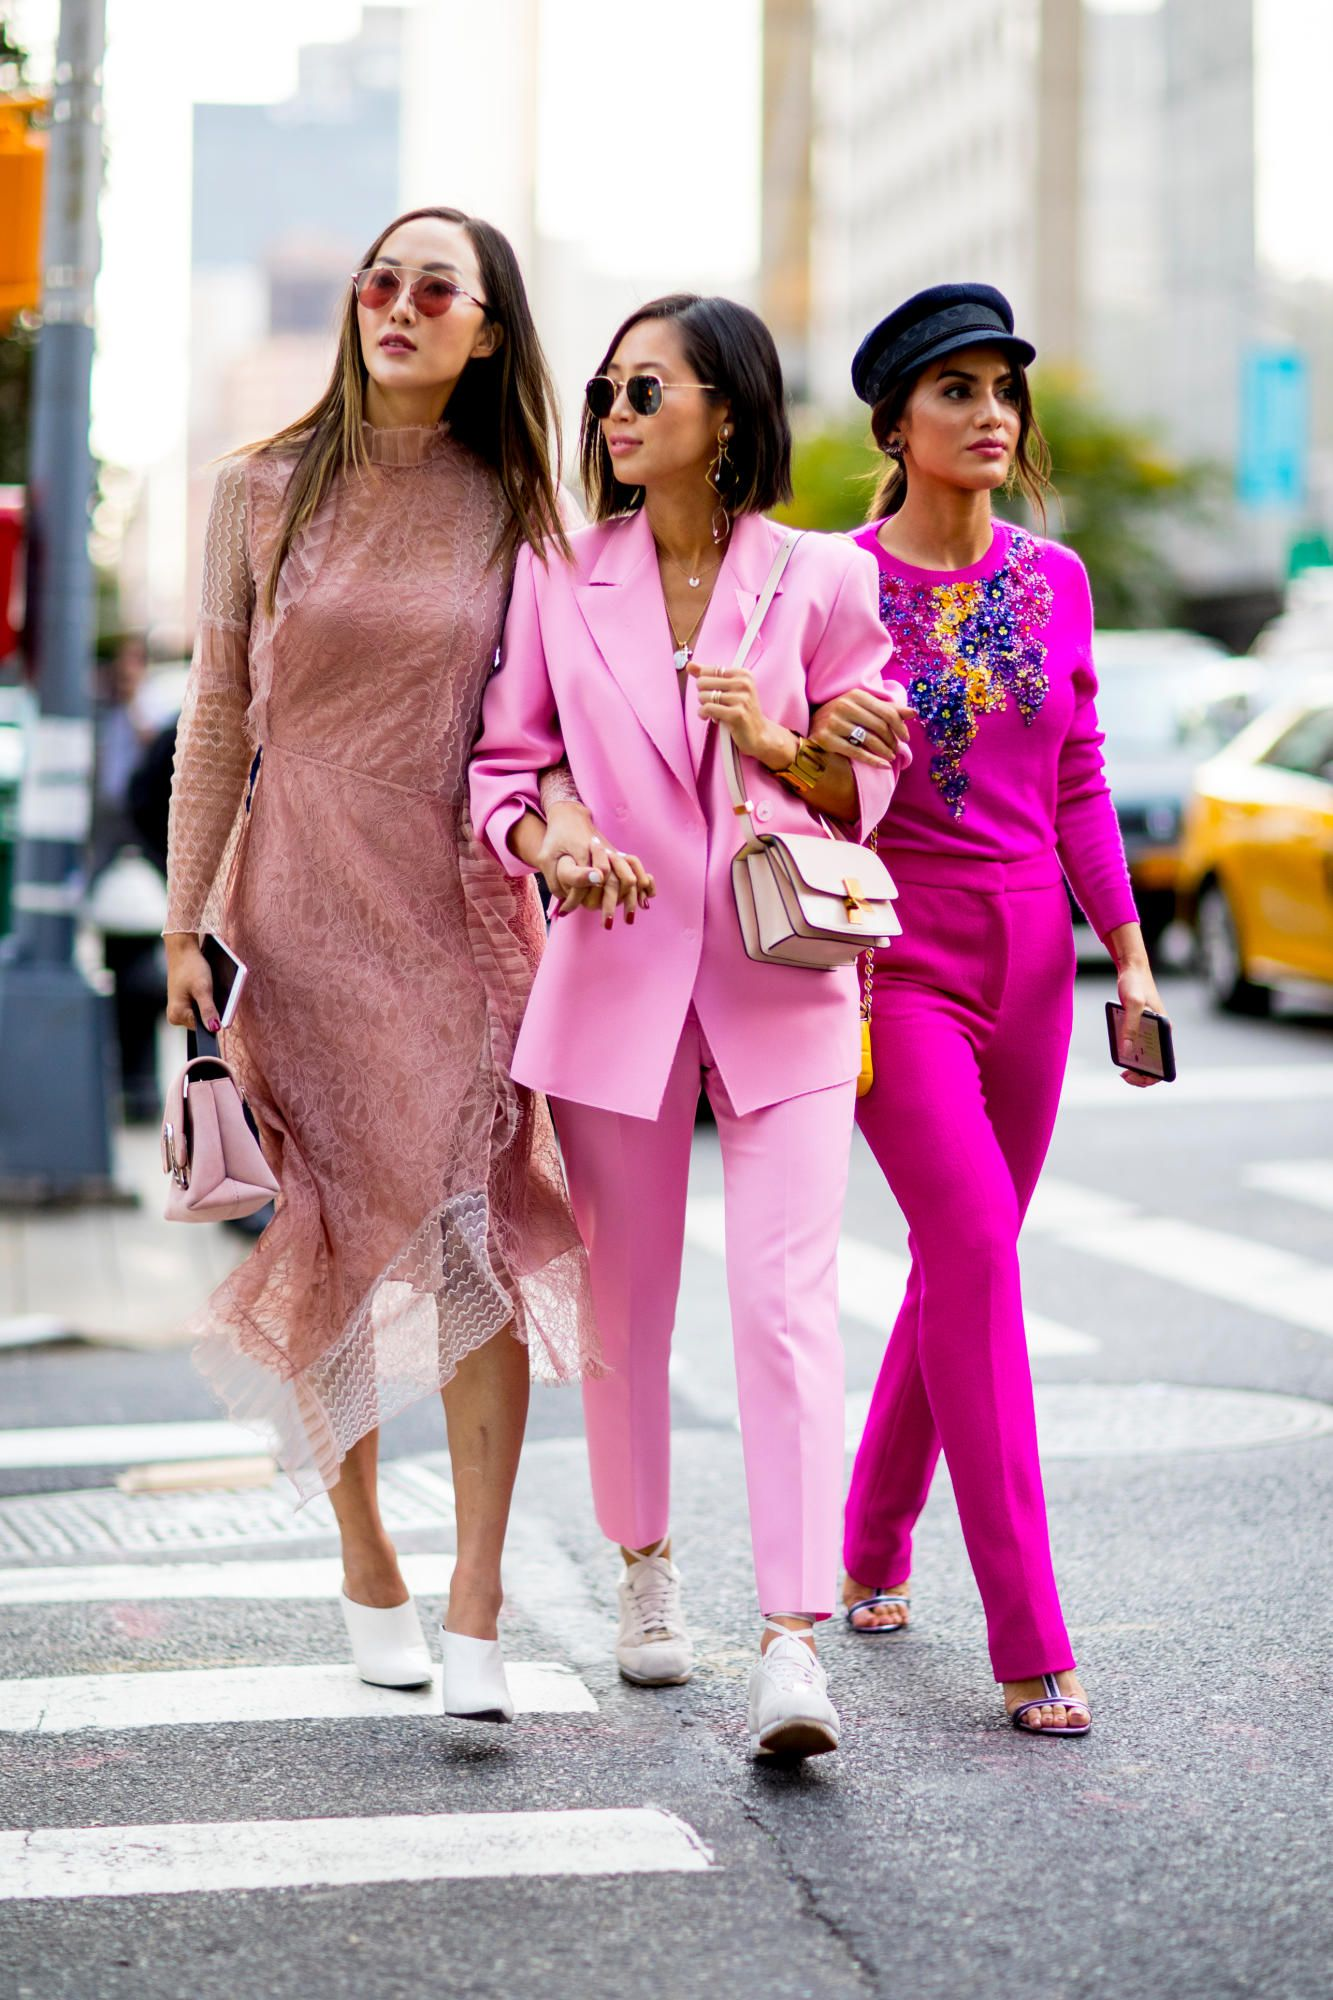 d17cc468d95b Team Pink sept17 SS18 On the street at New York Fashion Week. Photo   Imaxtree